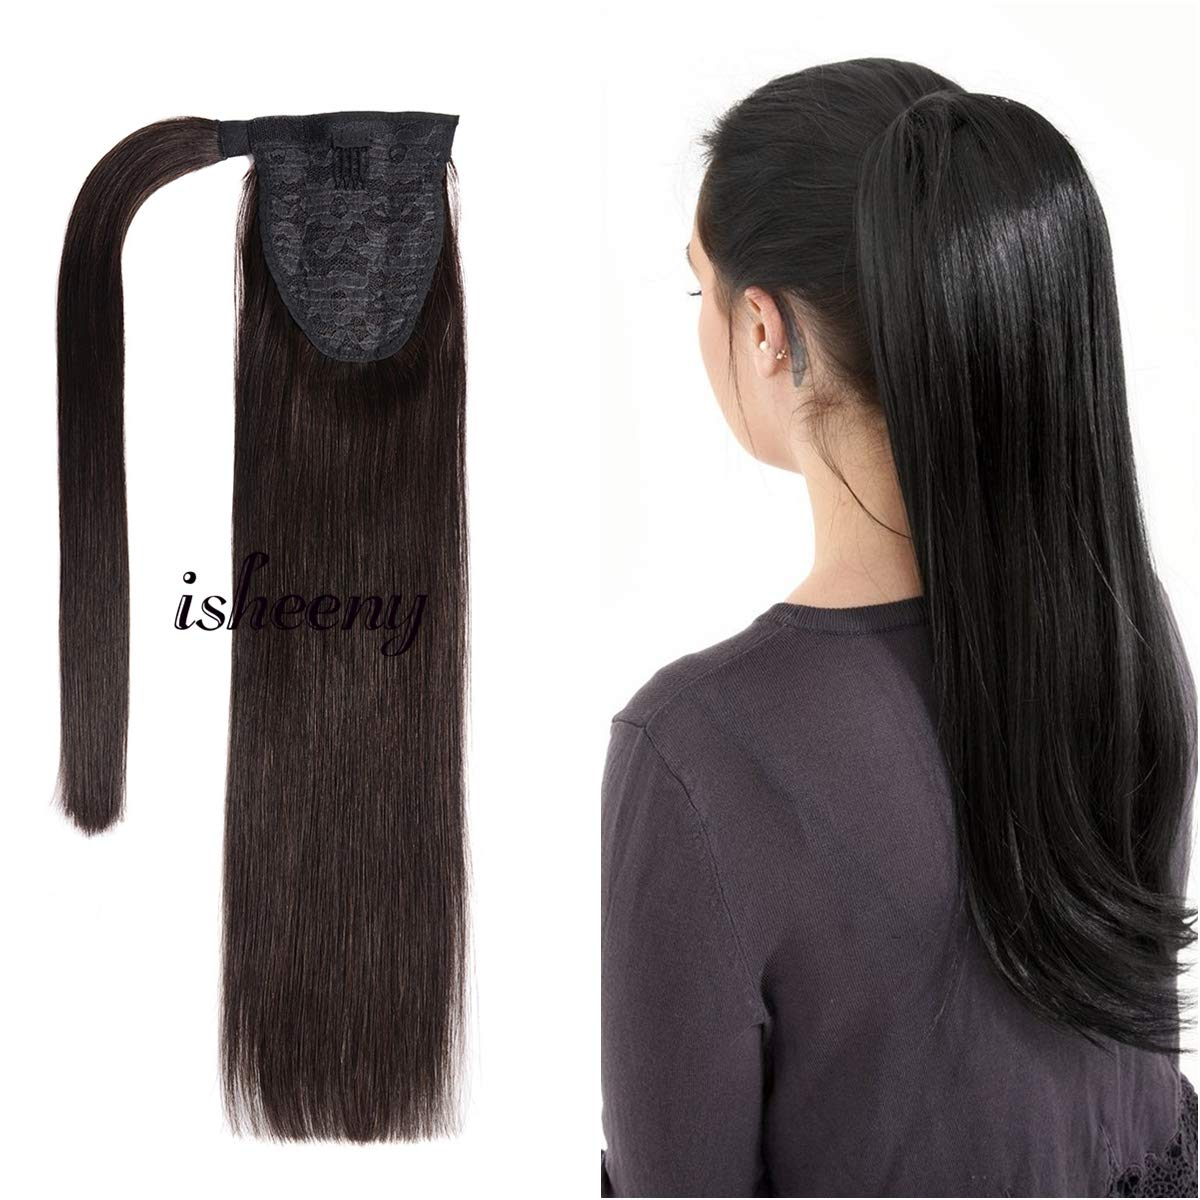 16 Inches Clip in Human Ponytail Hair Extensions Remy Human Hair Piece for Women 1 Piece Hairpiece 70 Grams Wrap Around Ponytail Human Hair Extensions 1B Color by isheeny